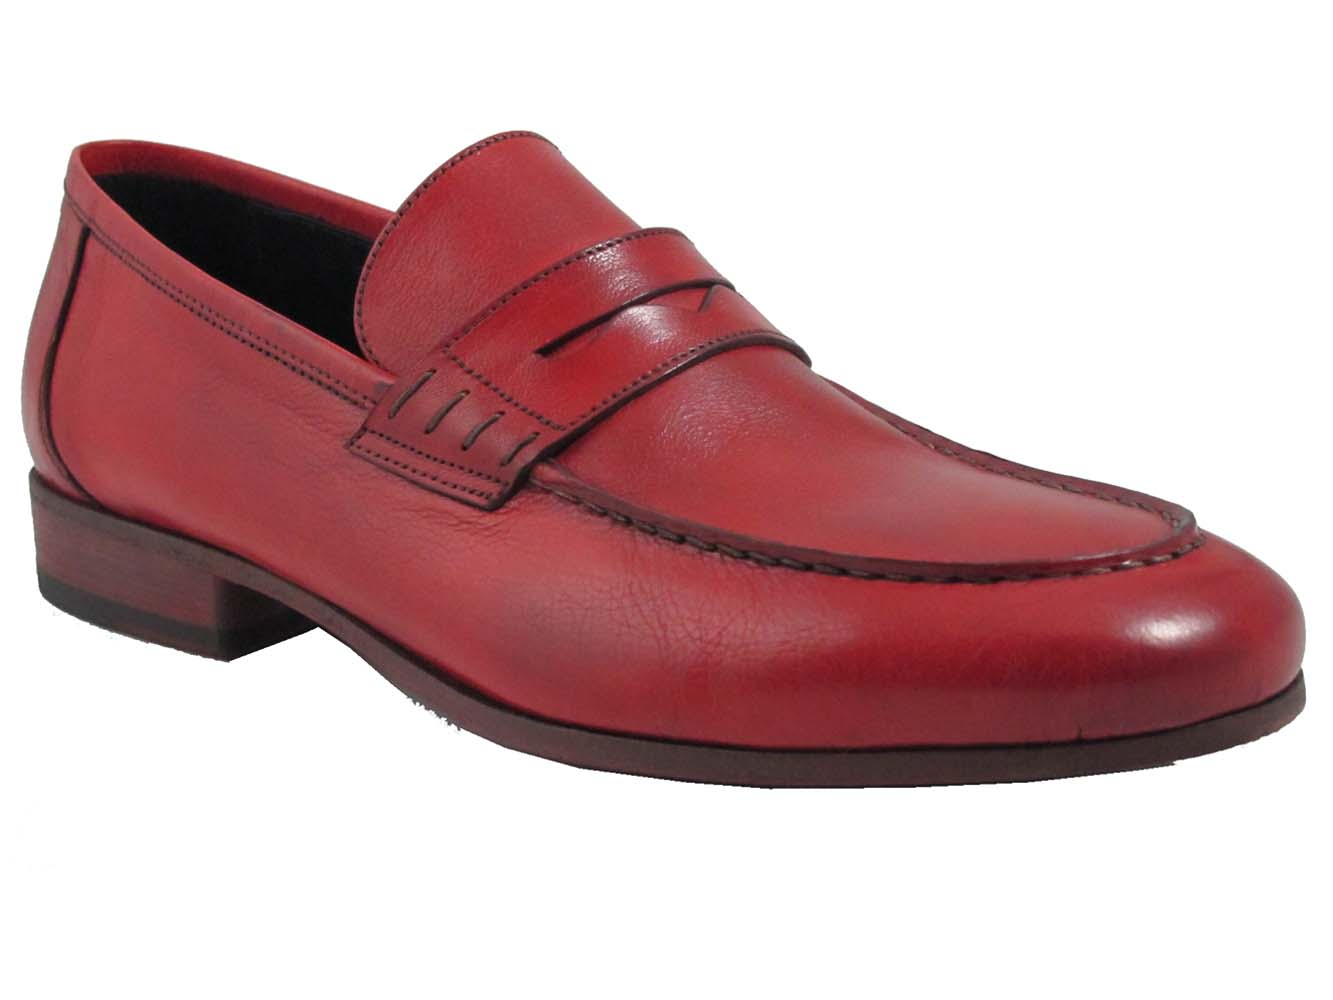 Rossi Menu0026#39;s Italian Leather 1876 Penny Loafers Shoes | EBay